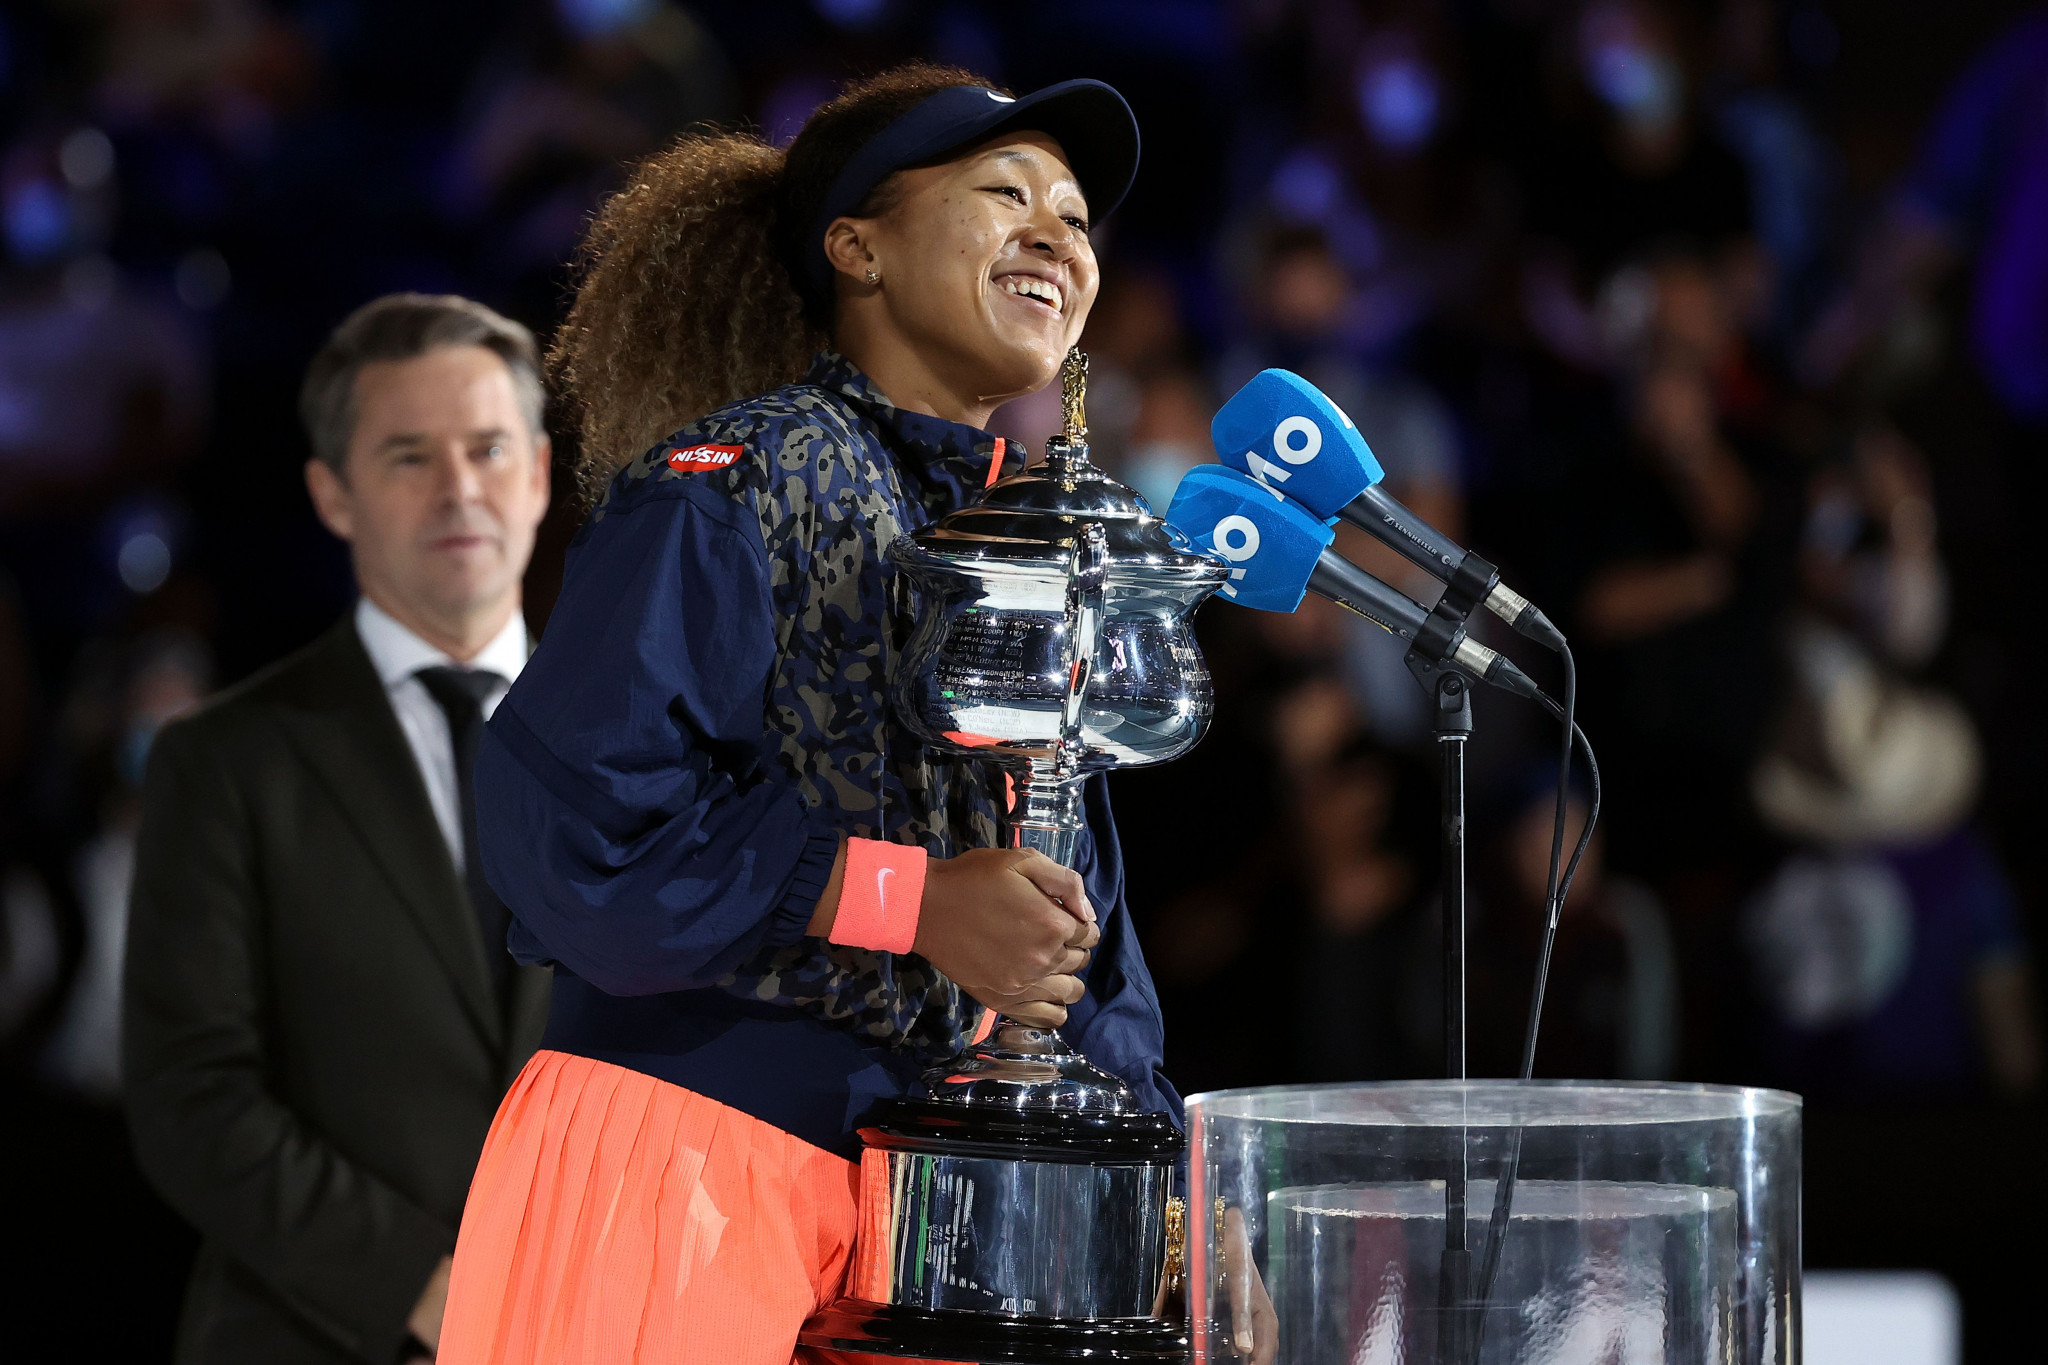 Naomi Osaka said she was thankful for the crowd after winning the US Open behind closed doors ©Getty Images